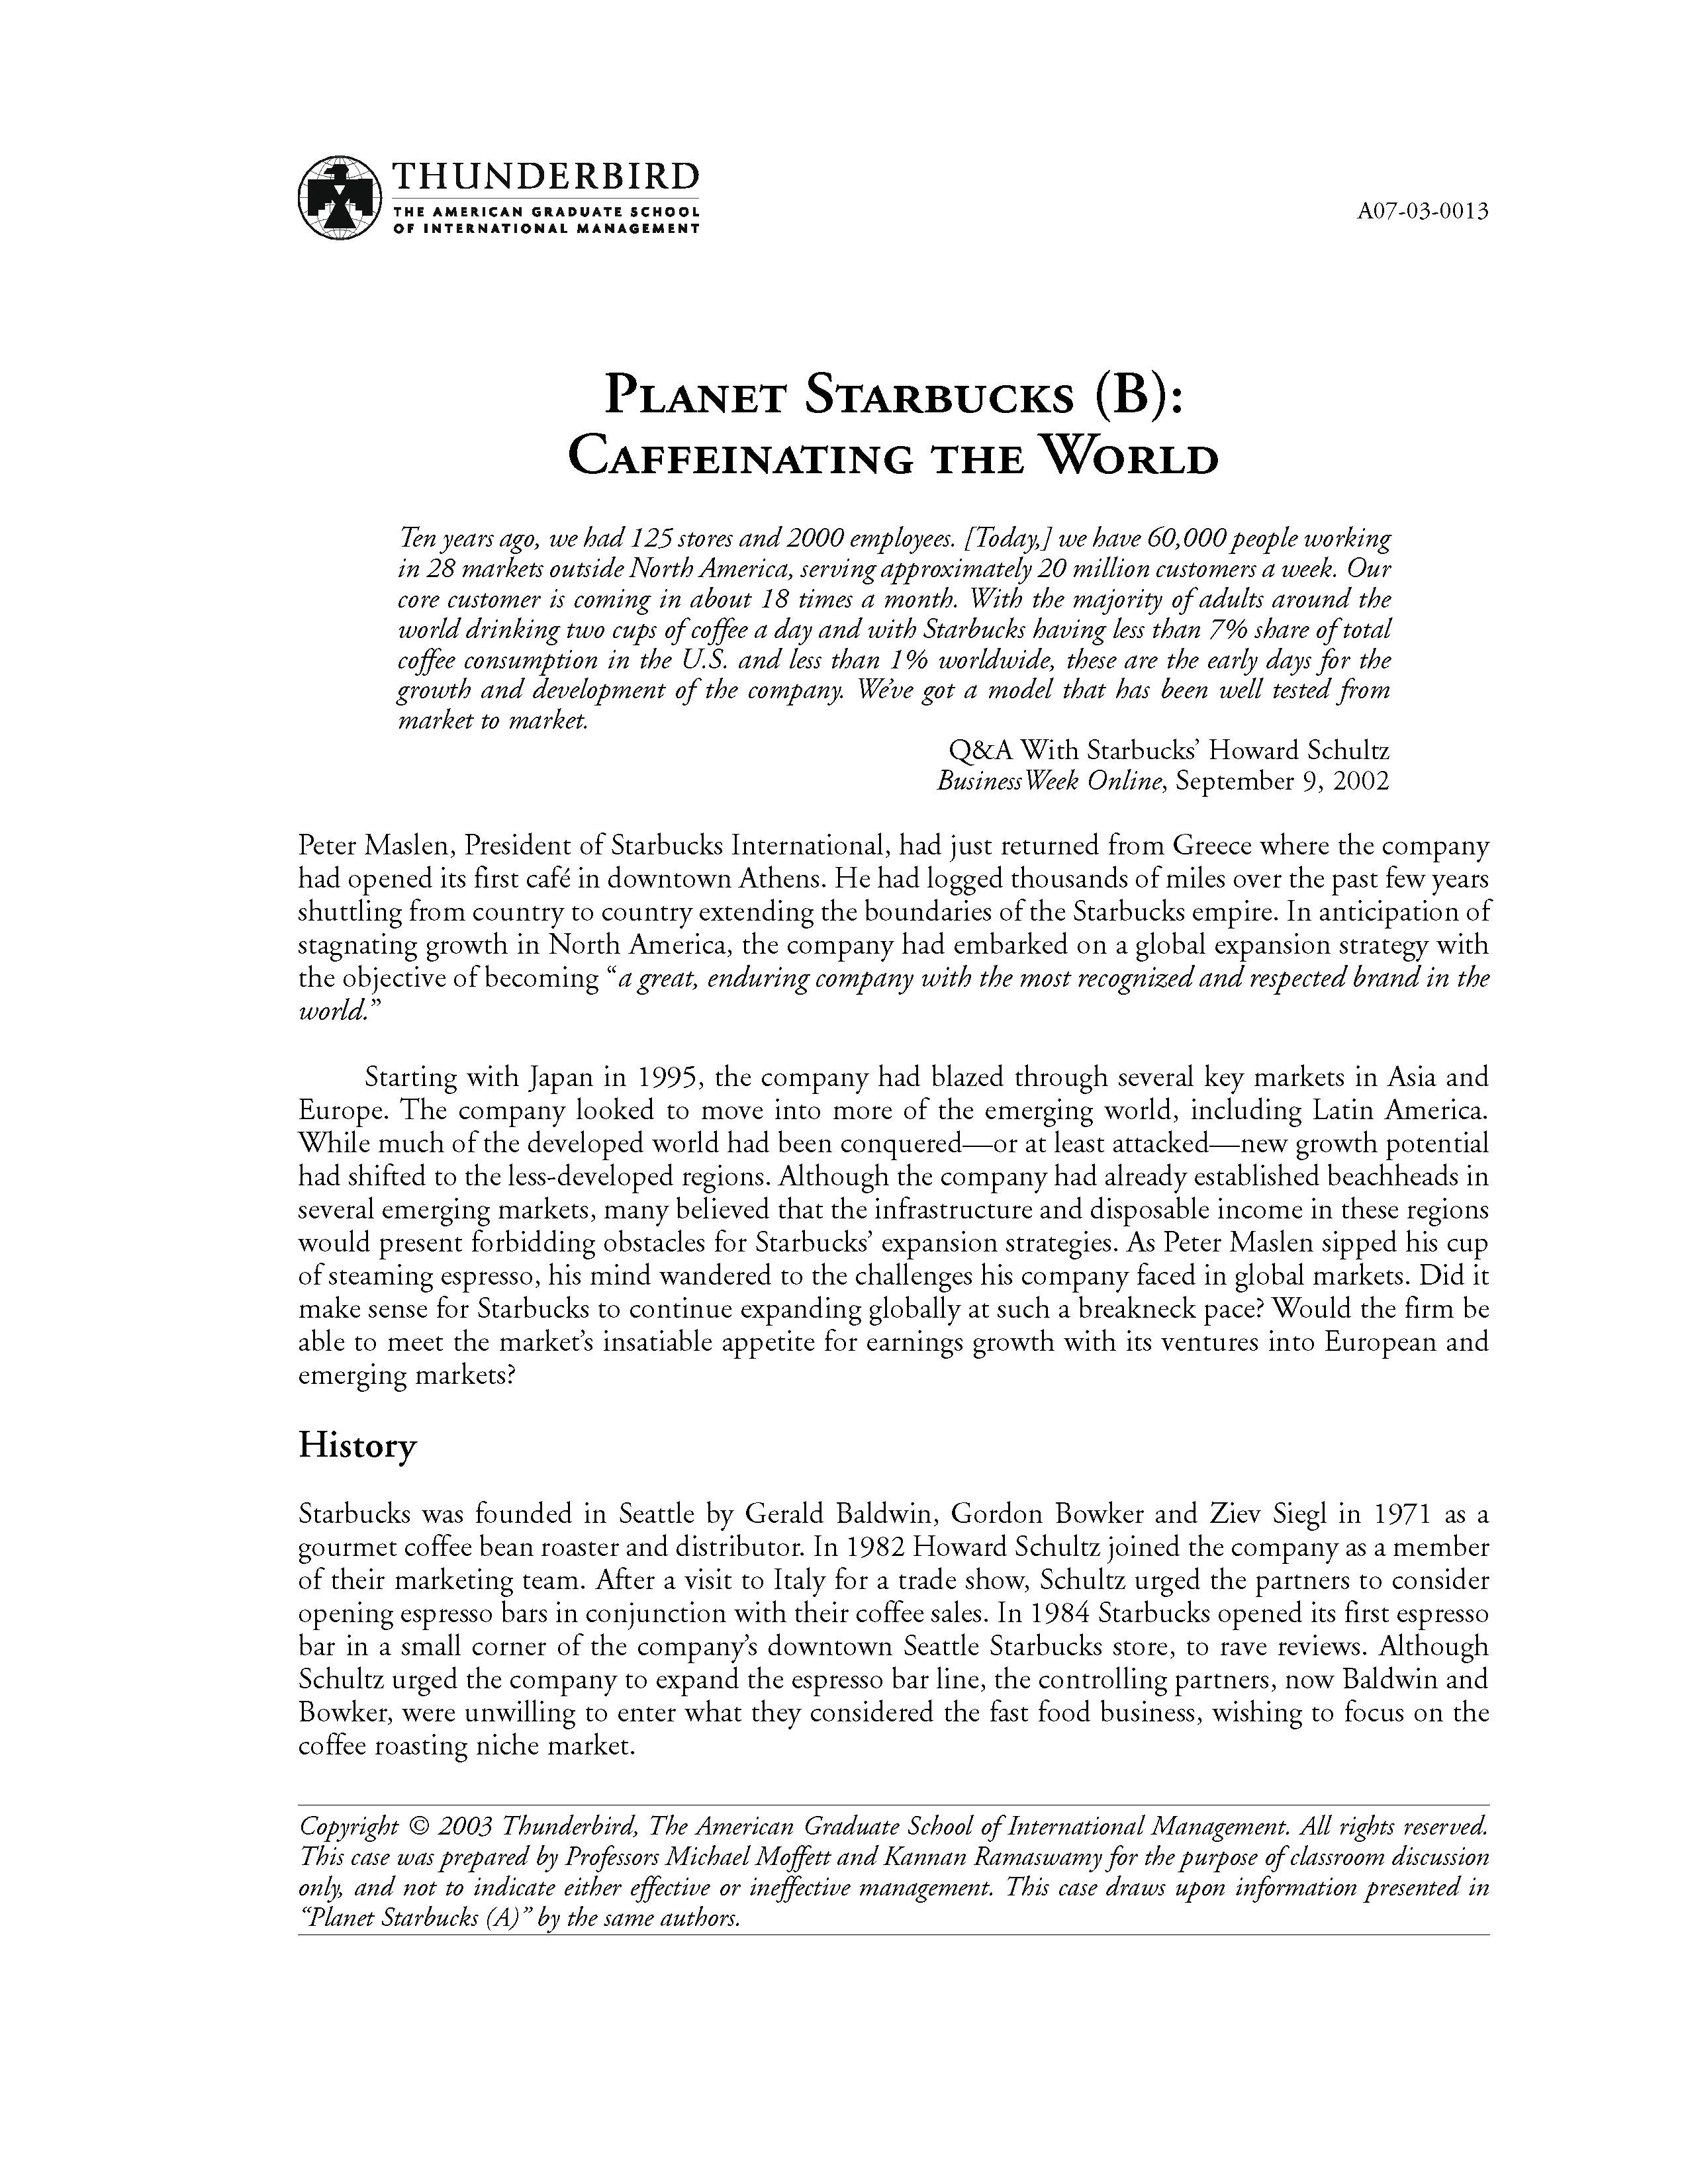 starbucks global expansion strategy essay example Starbucks' strategy for expanding its retail business is to increase its market share in existing markets and to for example, starbucks has wireless internet access in its retail stores, as well as what strategic choices do they seem to make by tailoring starbucks' global development strategy to.